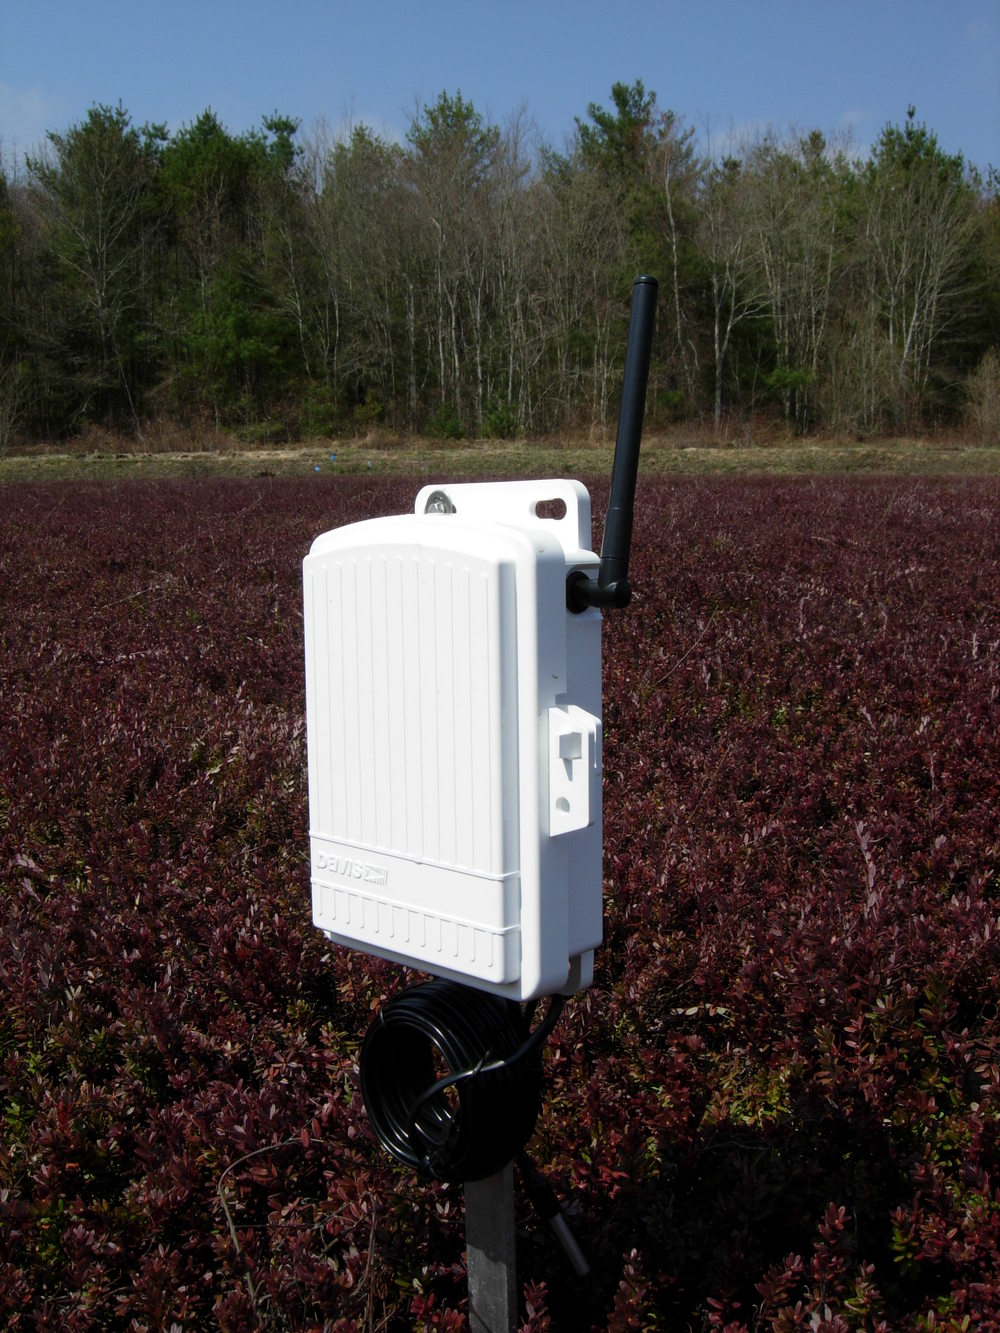 Wireless Temperture Sensor